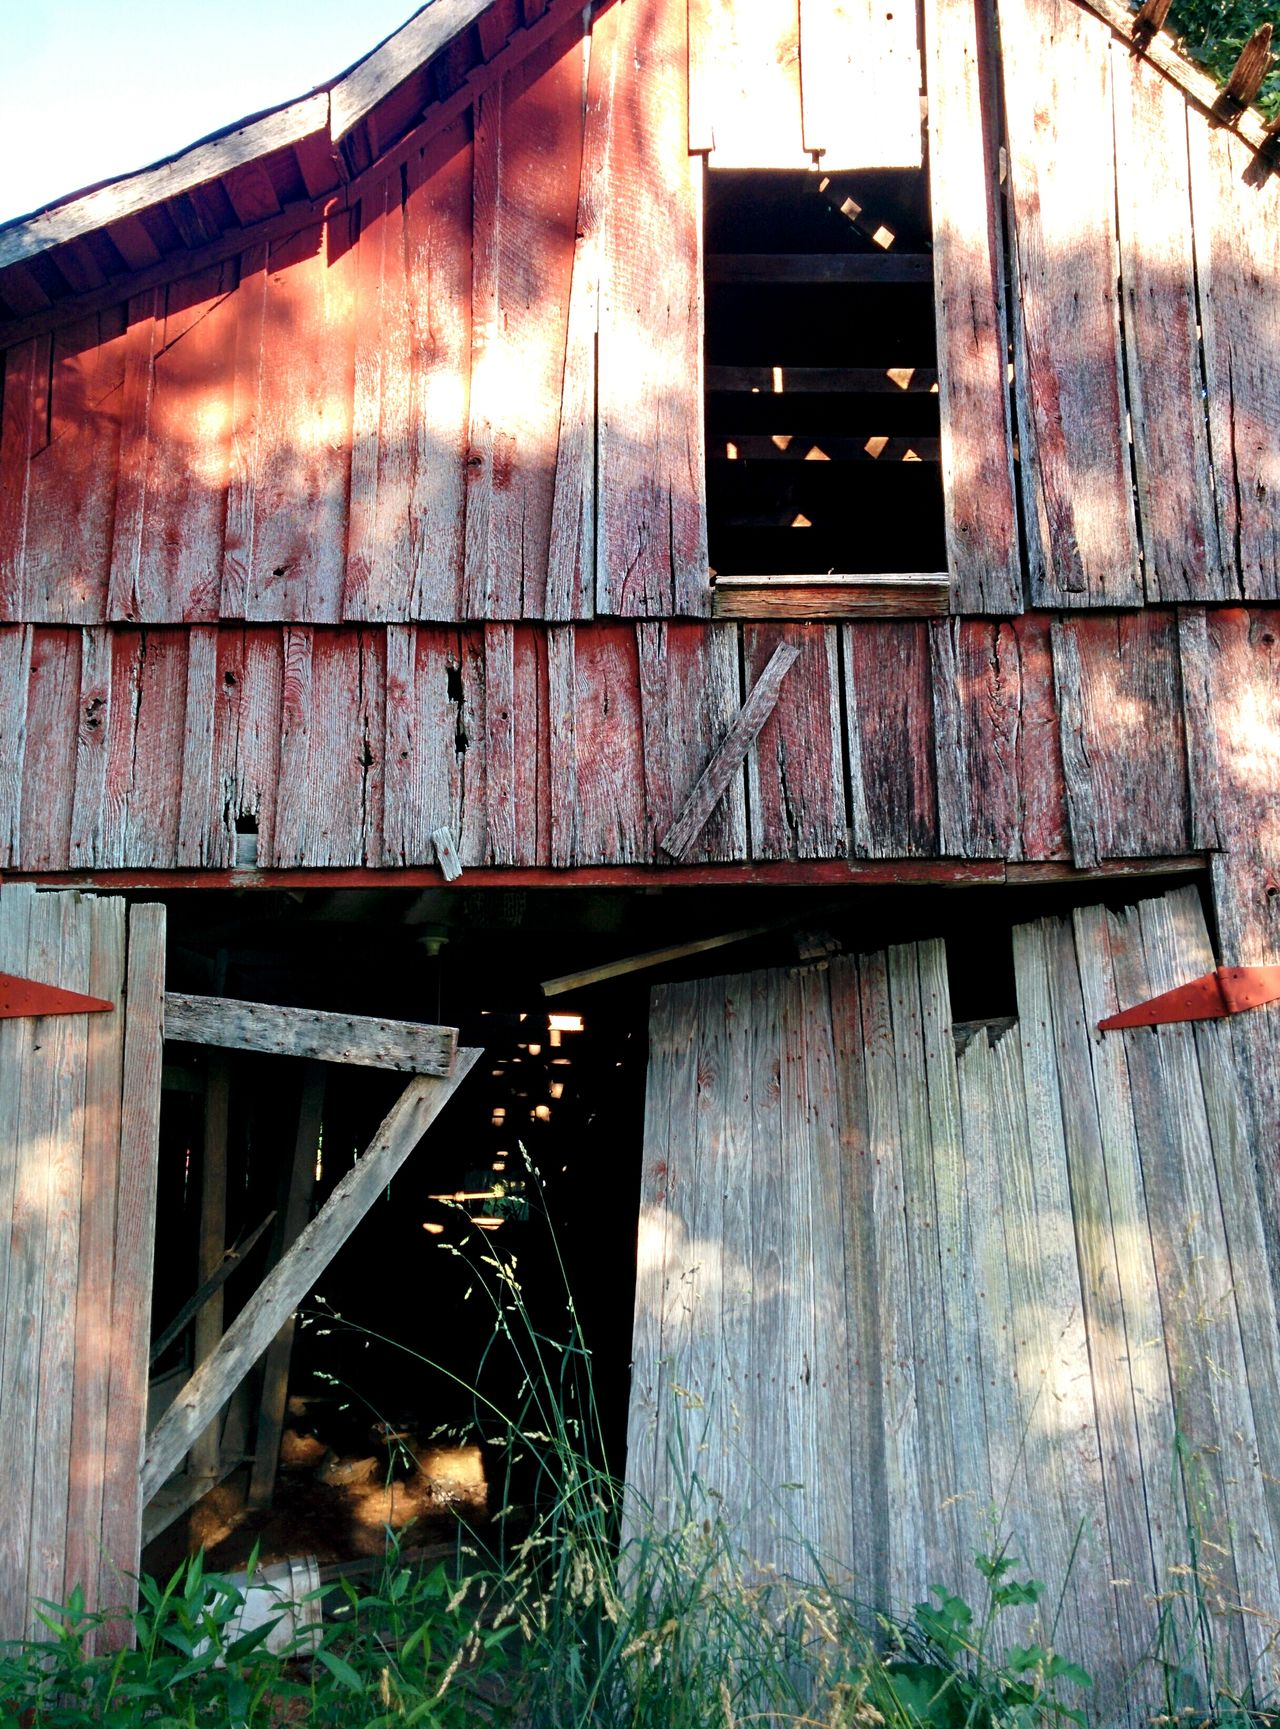 Abandoned Barn Rural Scenes Rural Decay Rural Exploration Red Barn Playing With The Light